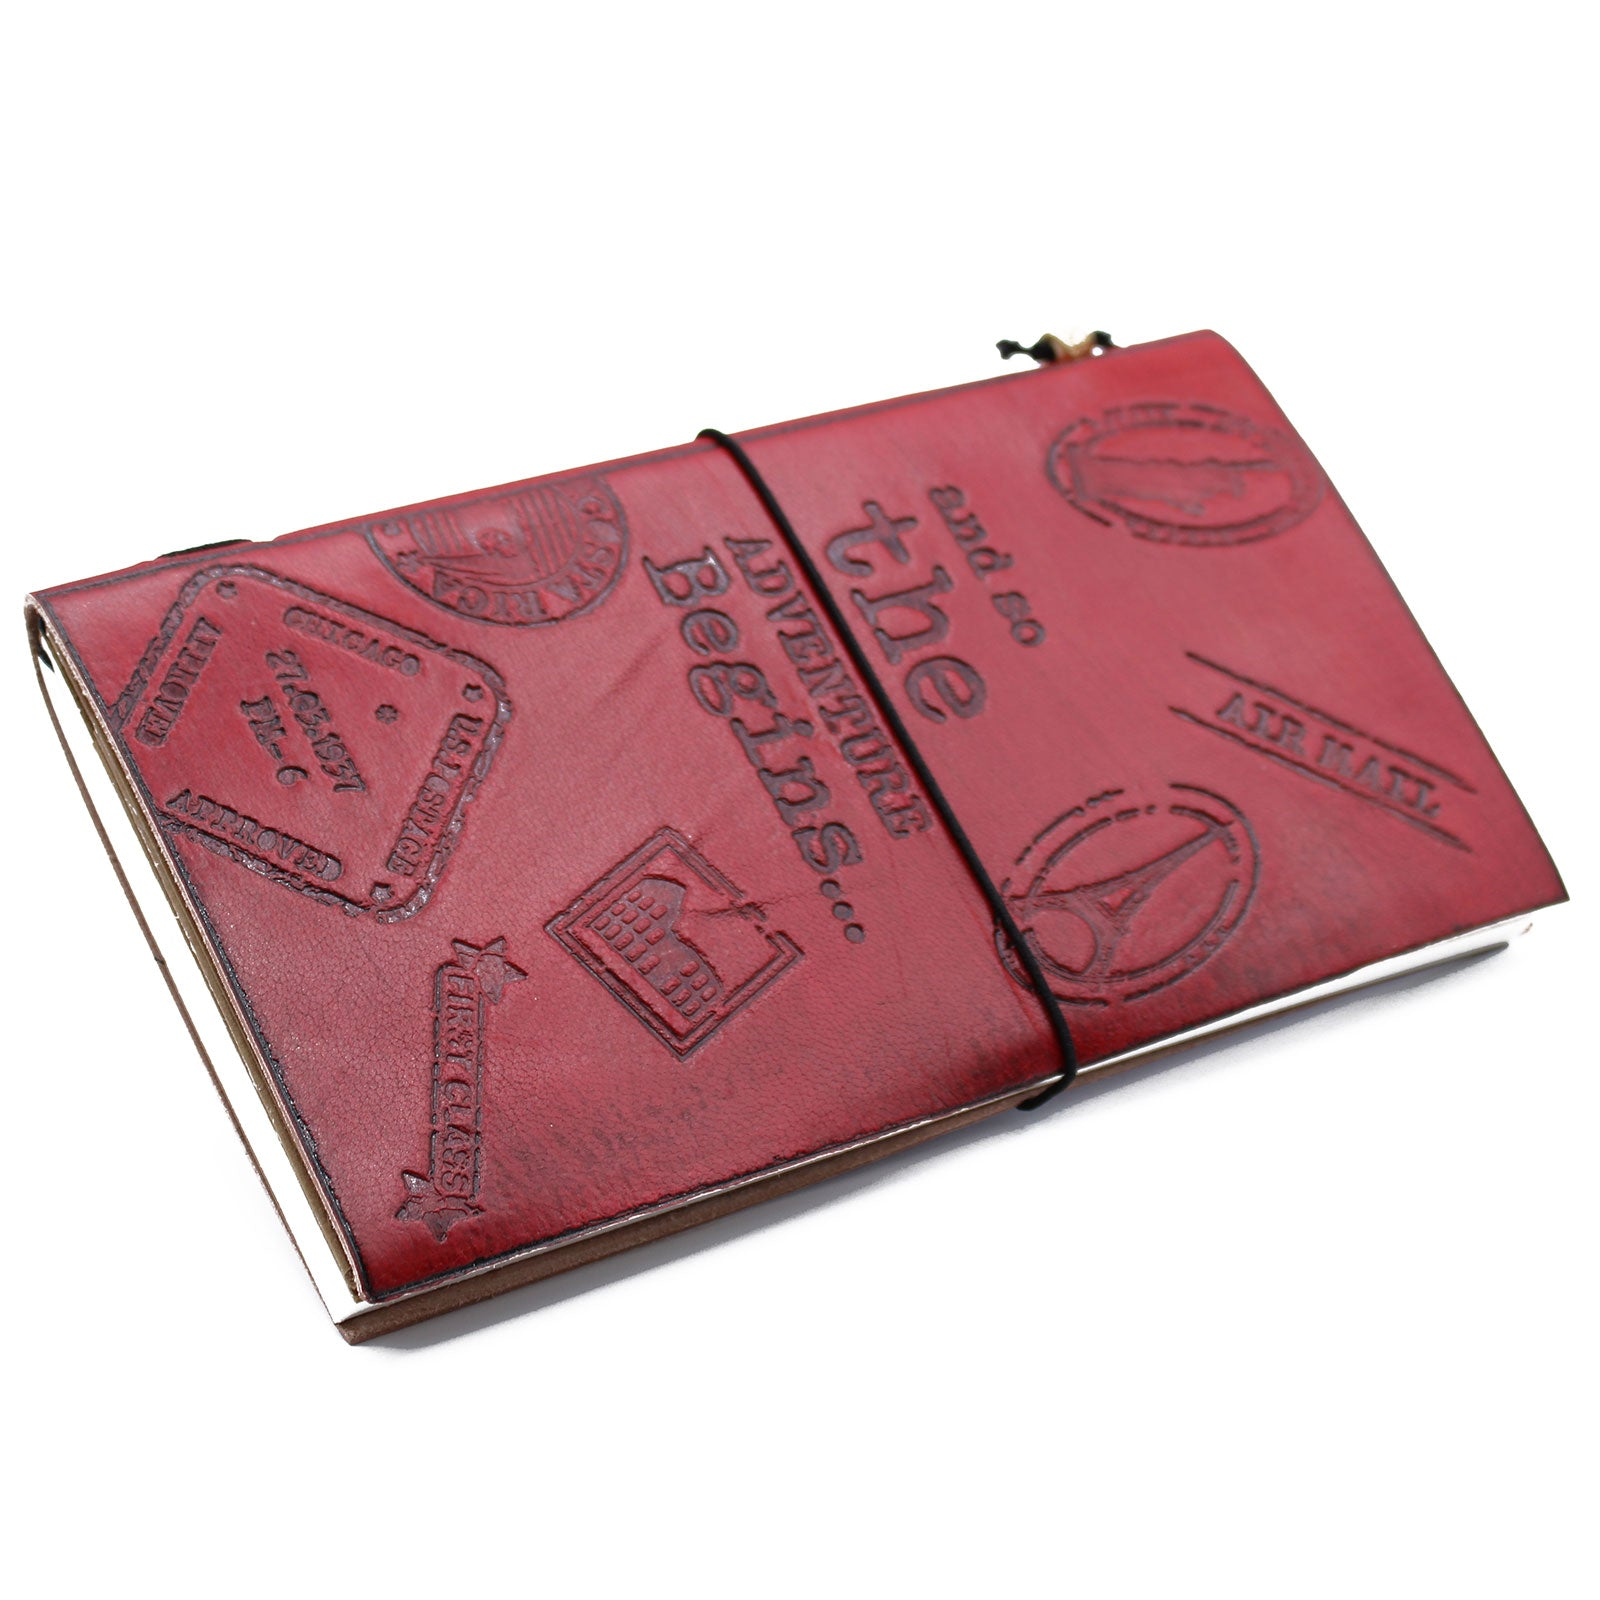 Handmade Leather Journal - The Adventure Begins - Red